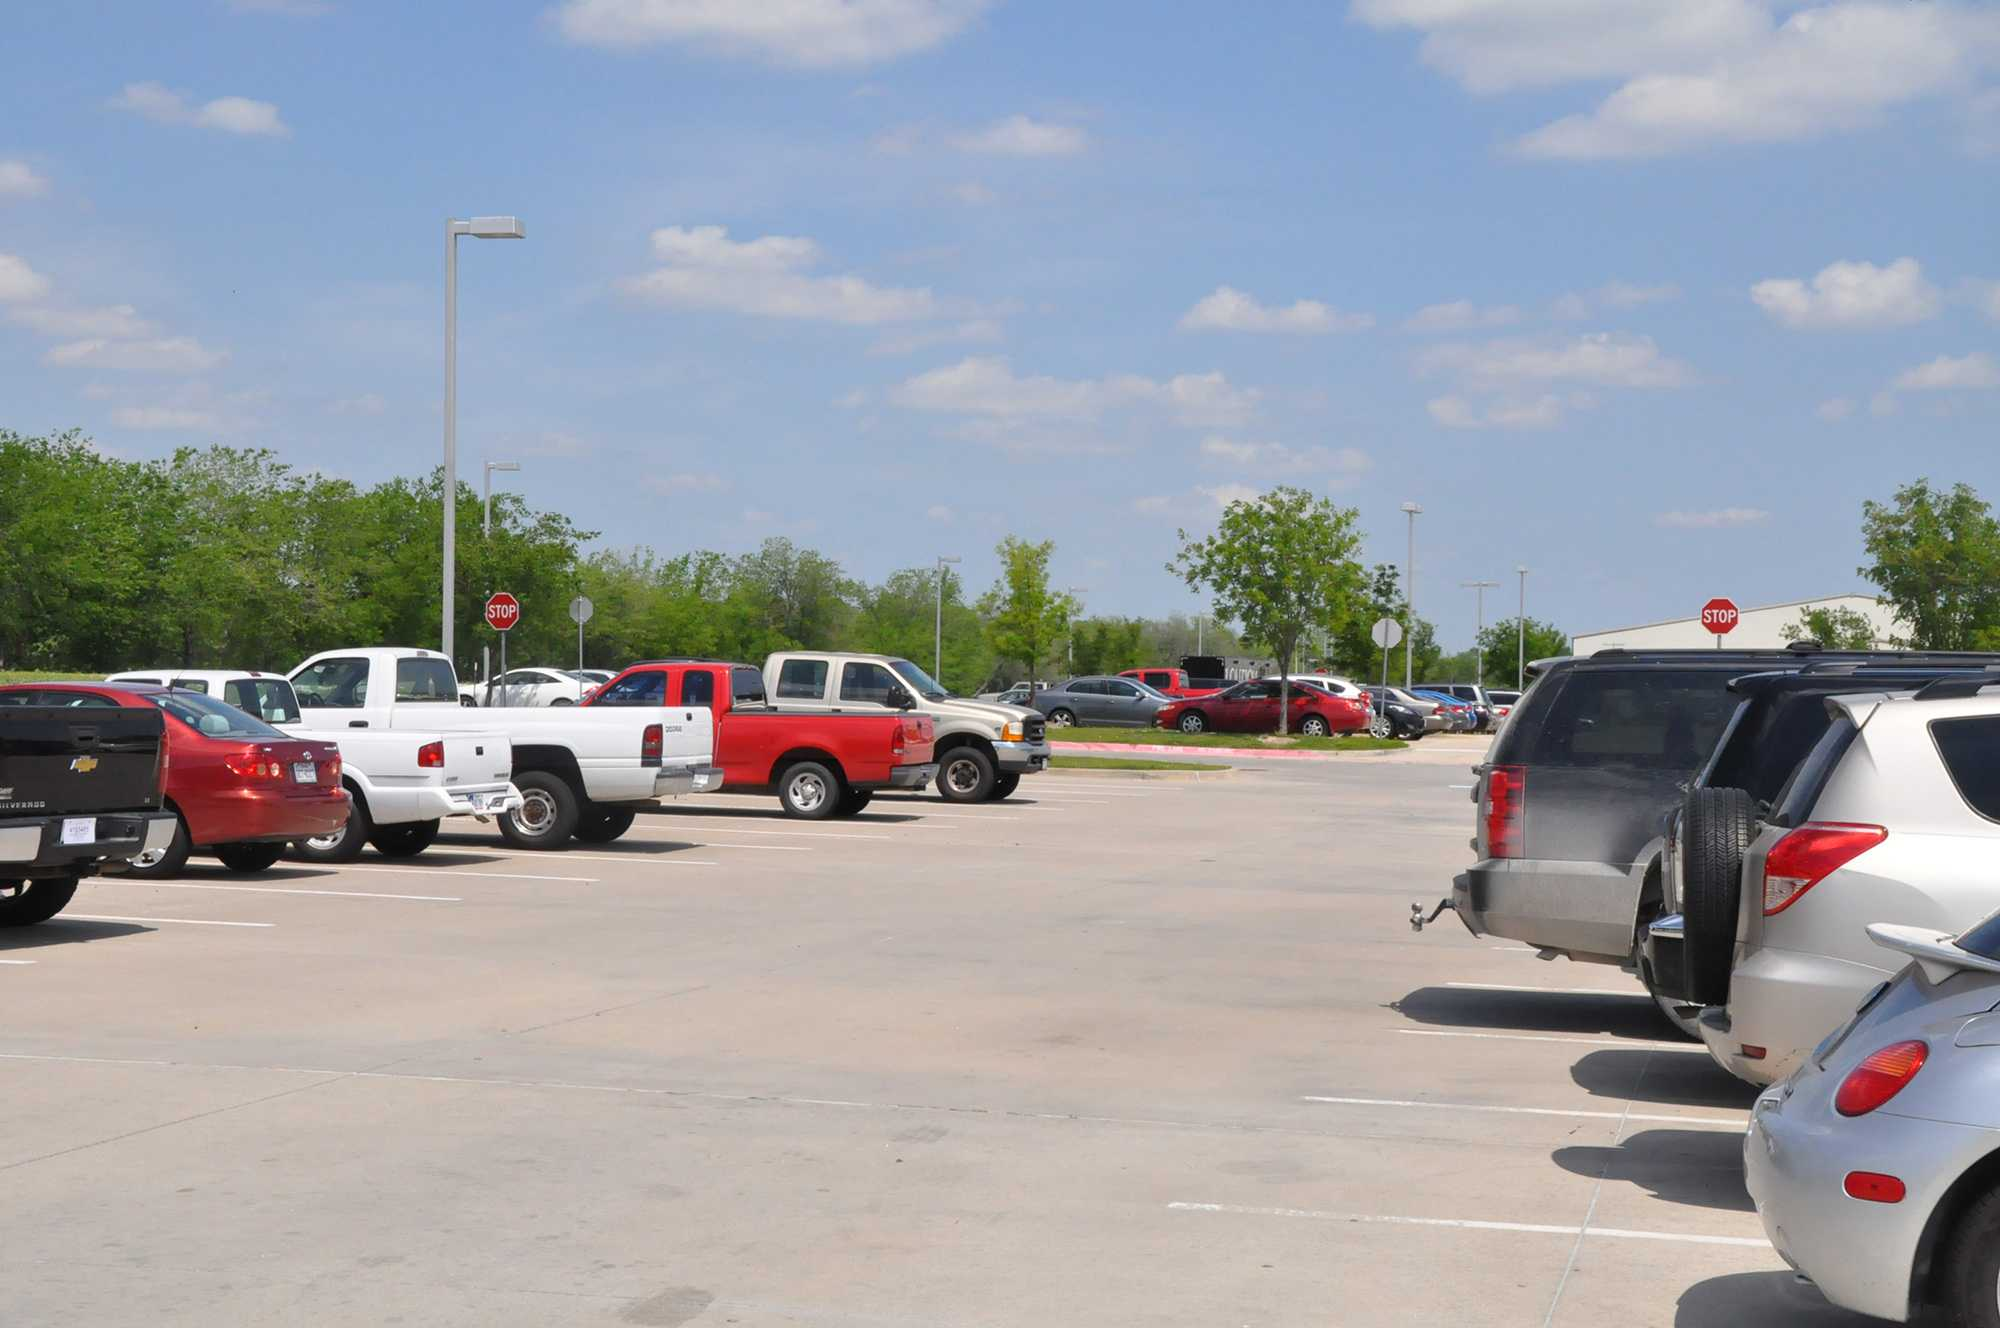 While the school parking lots may seem silent and still during the school day, before and after hours they can be a center for traffic and even reckless driving.